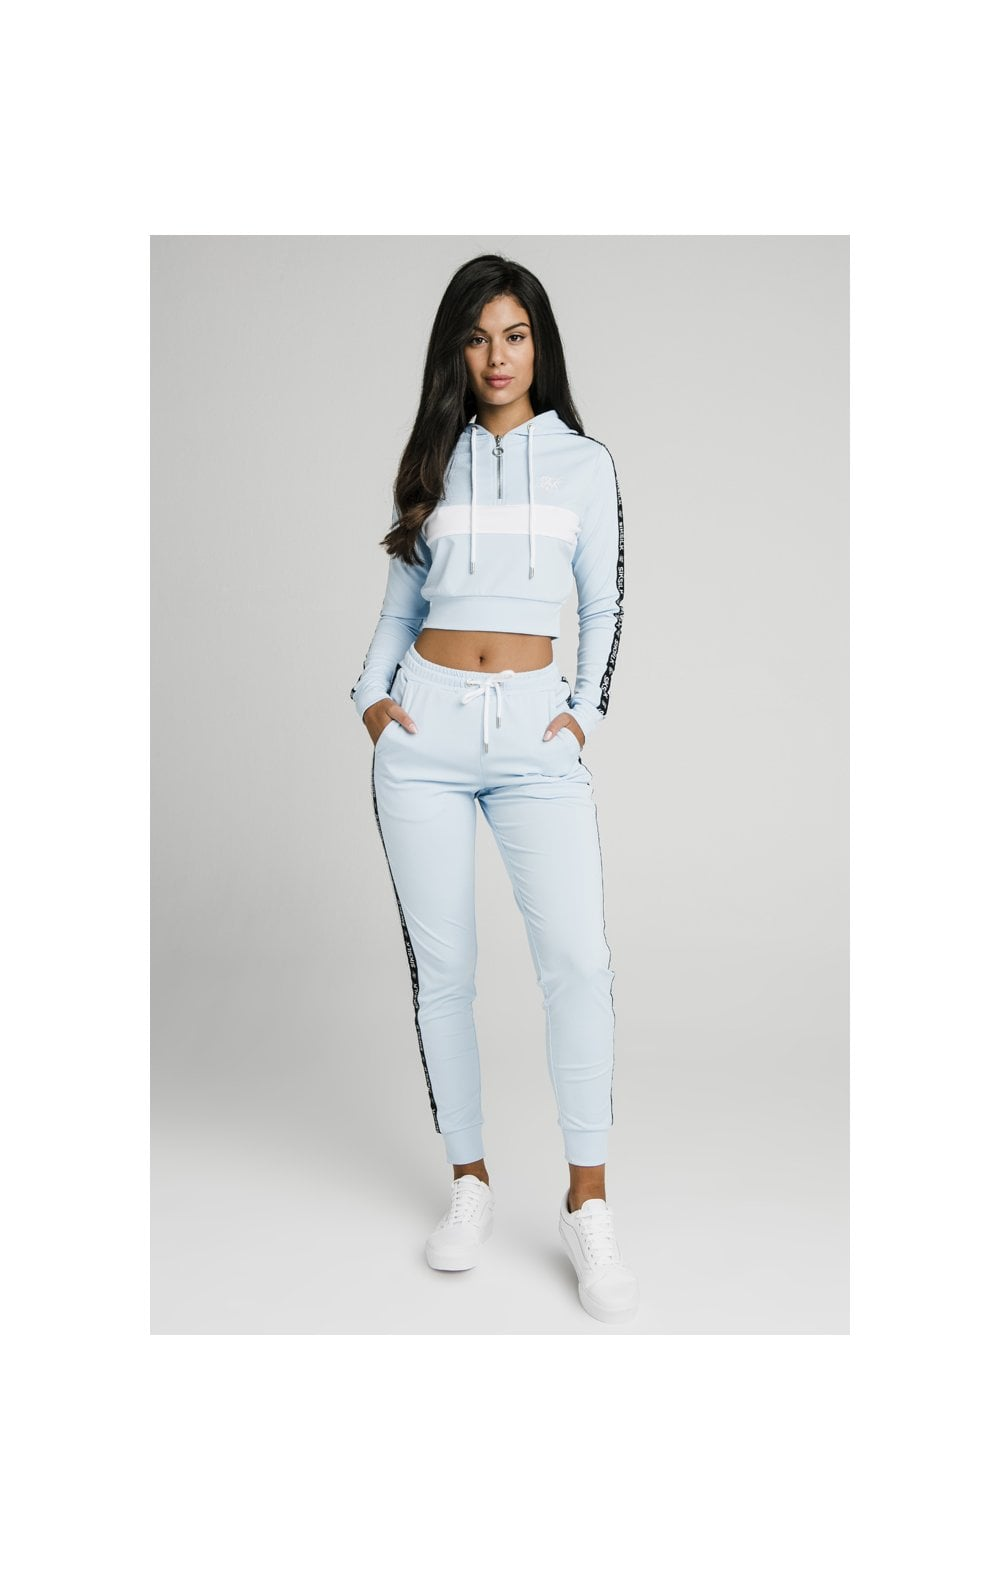 Load image into Gallery viewer, SikSilk Sky Tape Track Top - Light Blue (3)